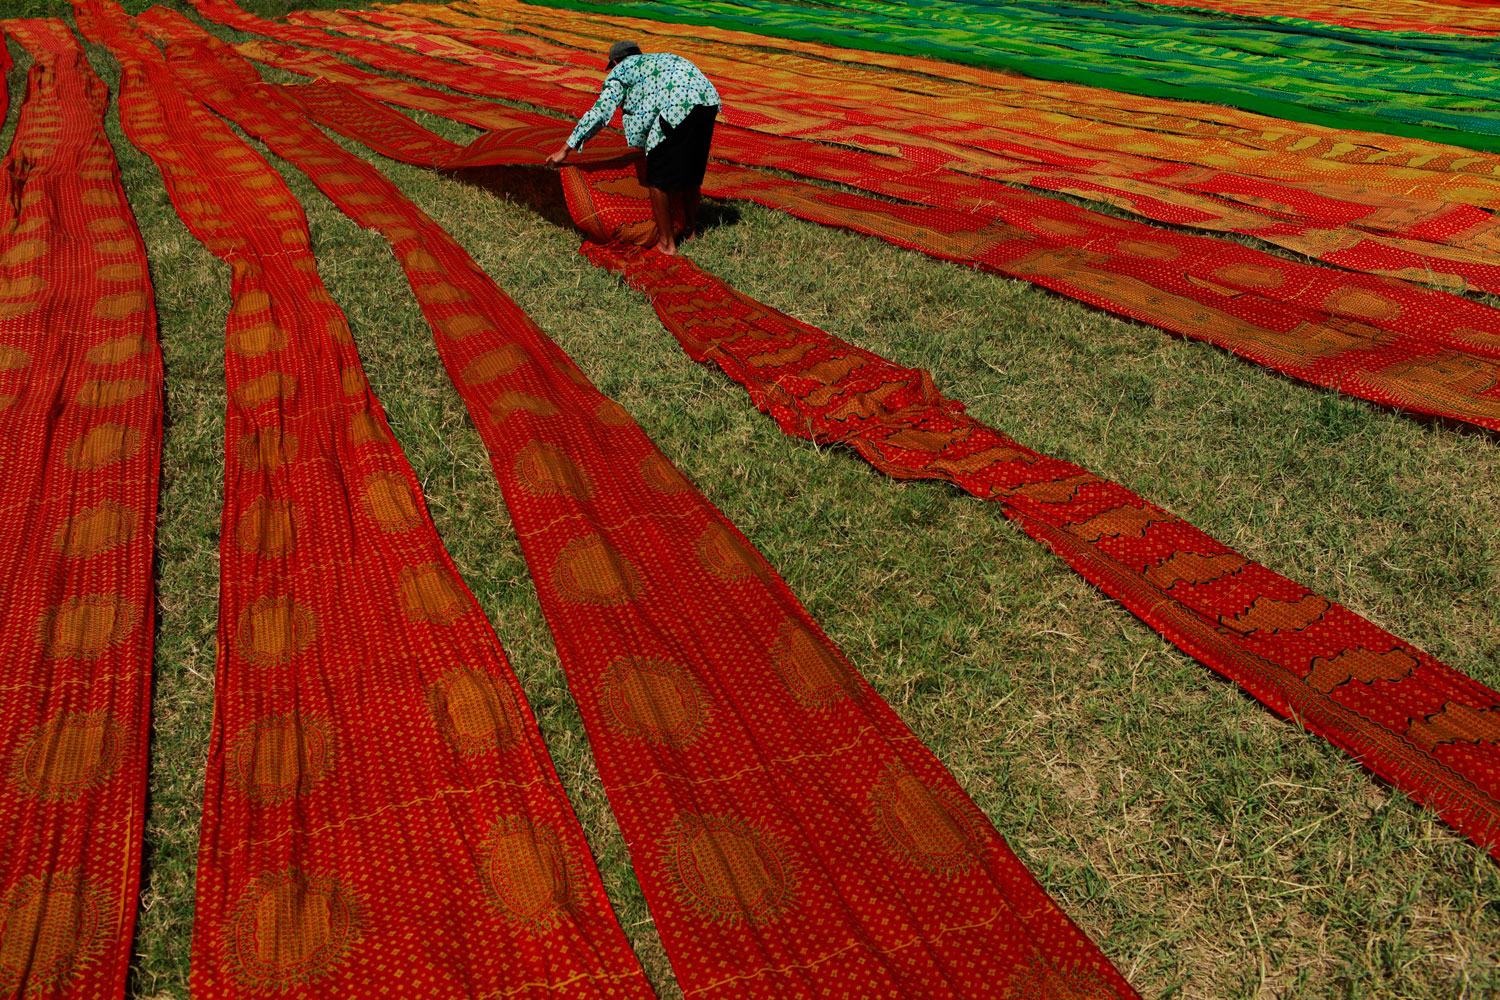 August 2, 2011. A worker lays batik cloth out on the grass to dry in Solo, central Java province. Indonesia will host the World Batik Global Summit next month in Jakarta.